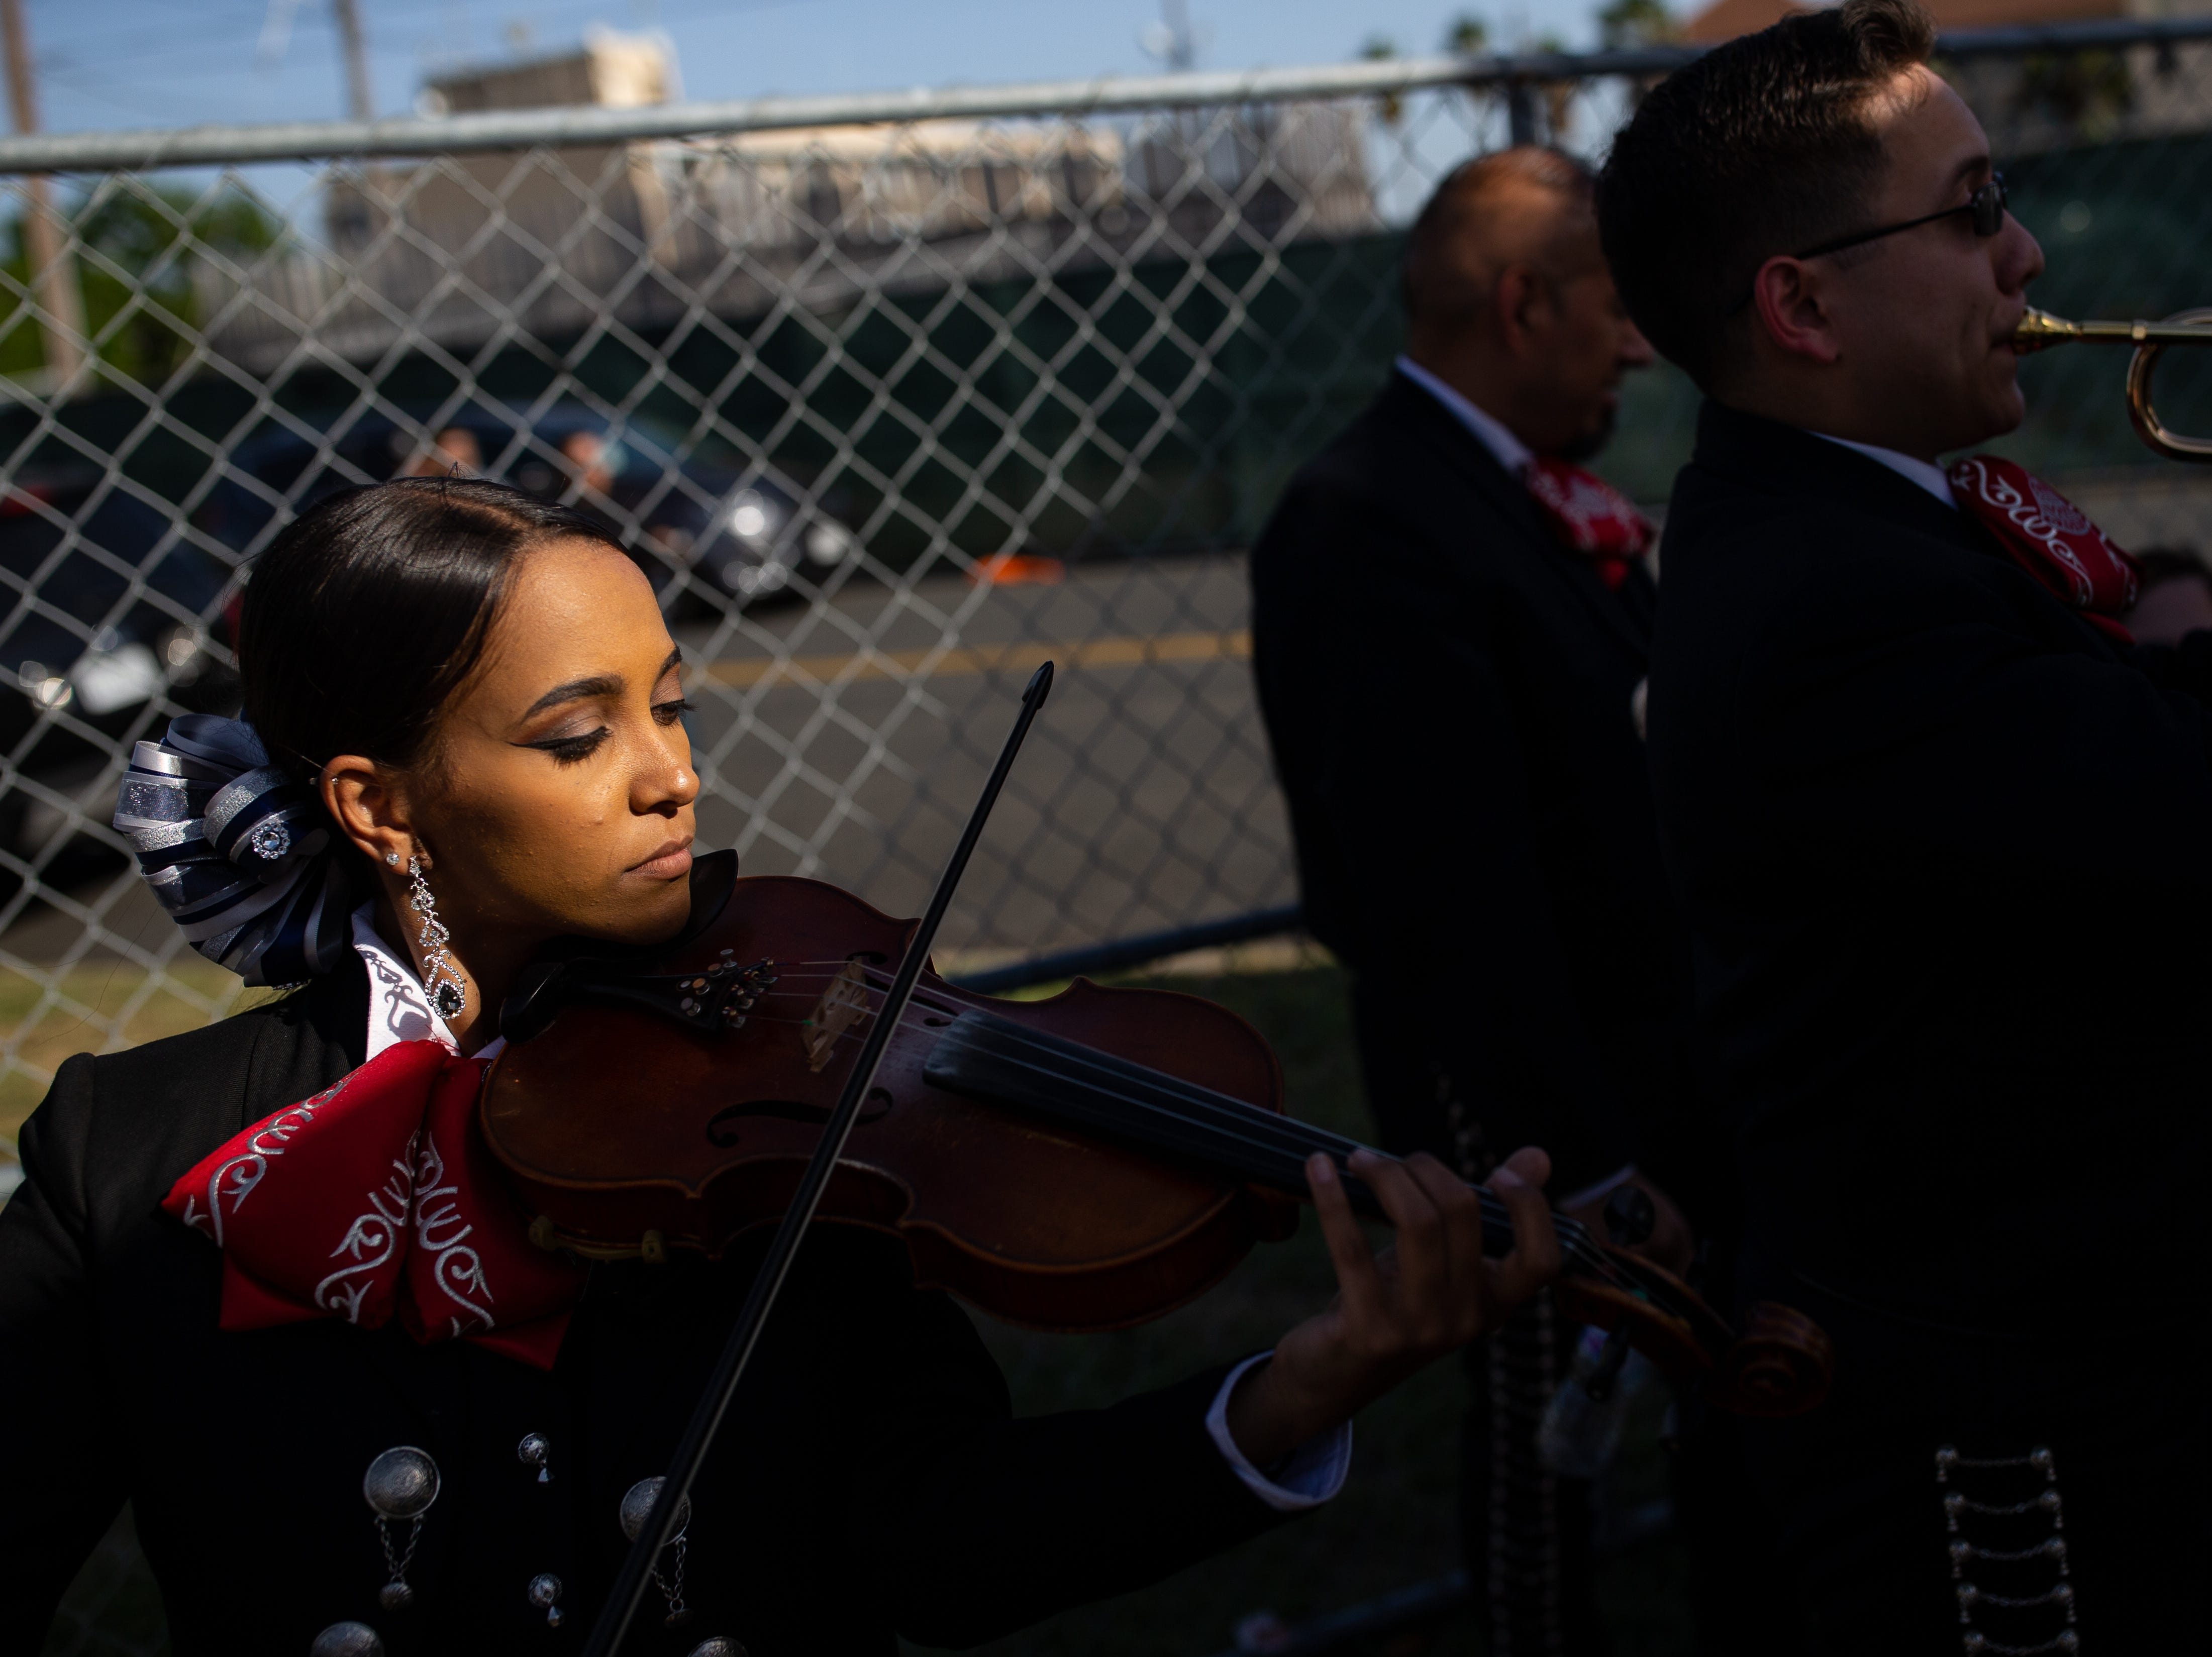 A member of the Mariachi Campanas De America warms up side stage during the second say of Fiesta de la Flor on Saturday, April 13, 2019.